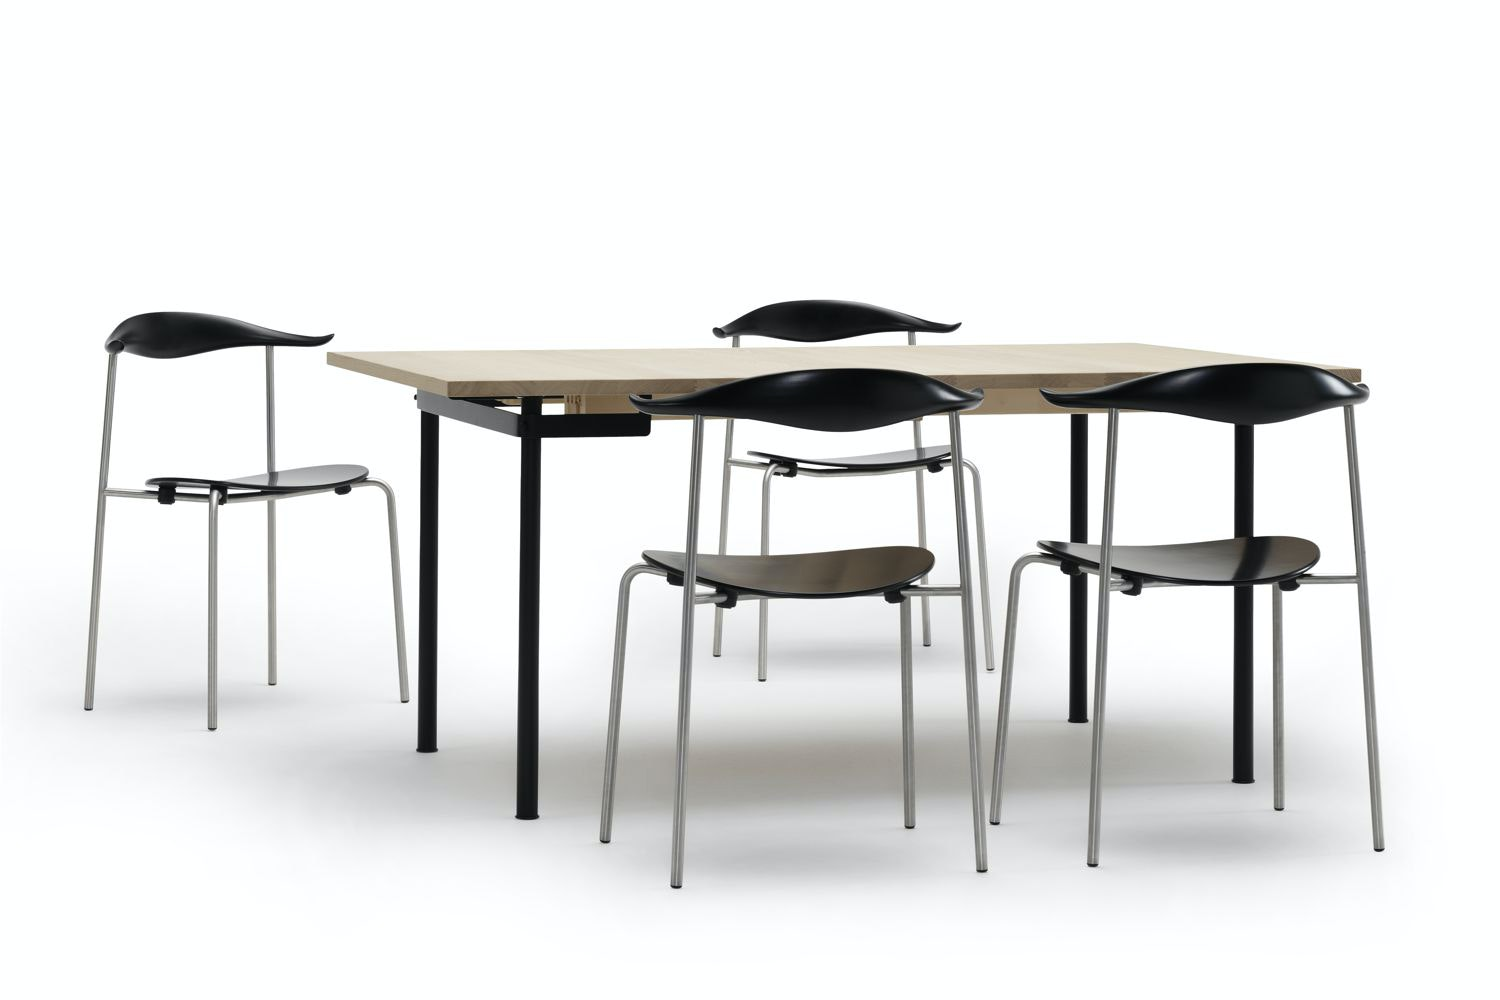 CH322 Black by Hans J. Wegner for Carl Hansen & Son